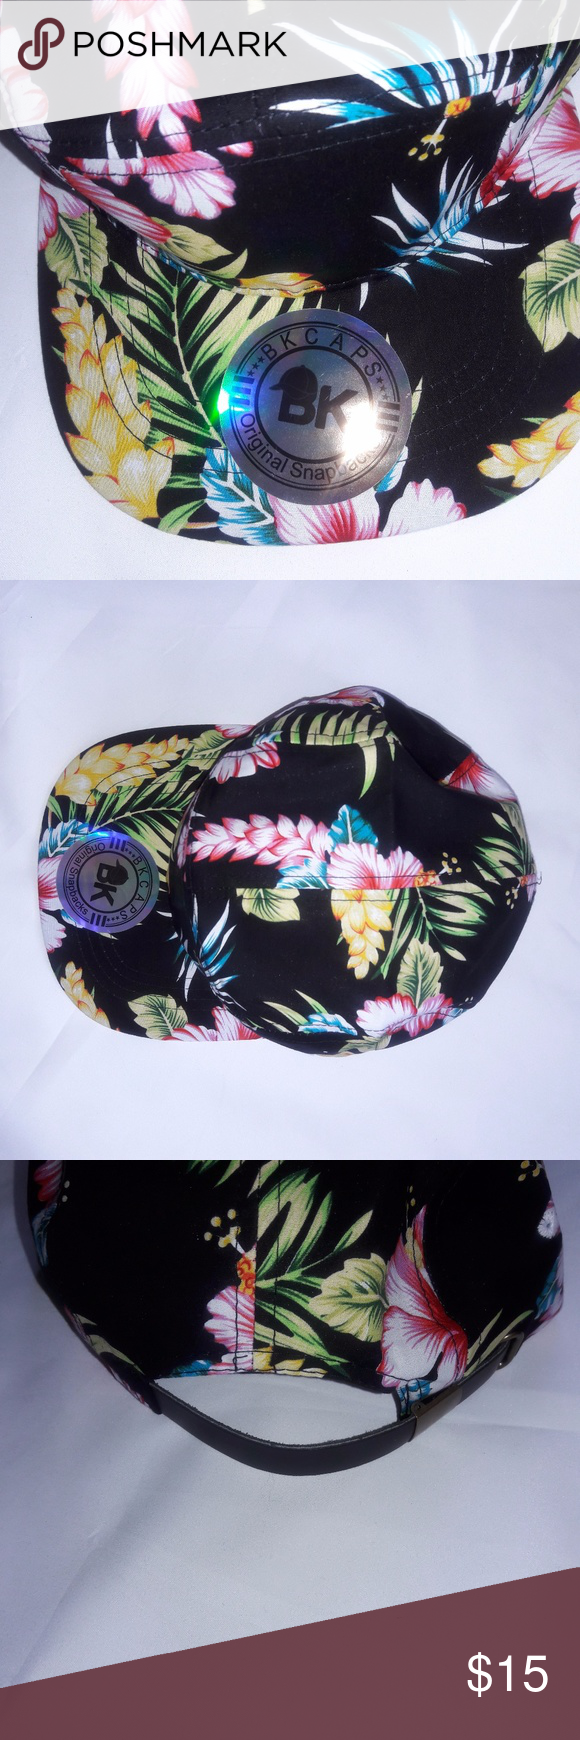 BK Caps Original Snapbacks Hawaii Hat Snapback BK Caps Original Snapbacks  Hawaii Hat Snapback Adjustable Black 594cfbddf77